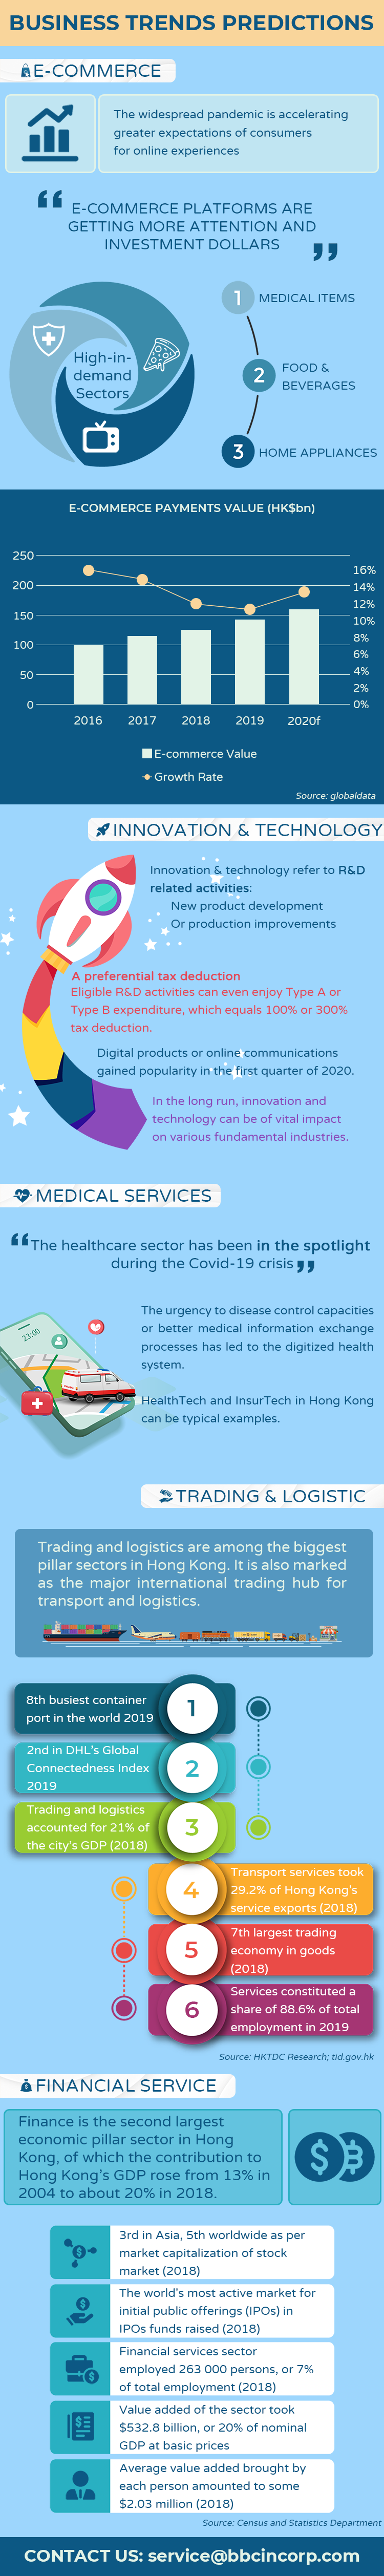 top-hk-business-trends-post-covid